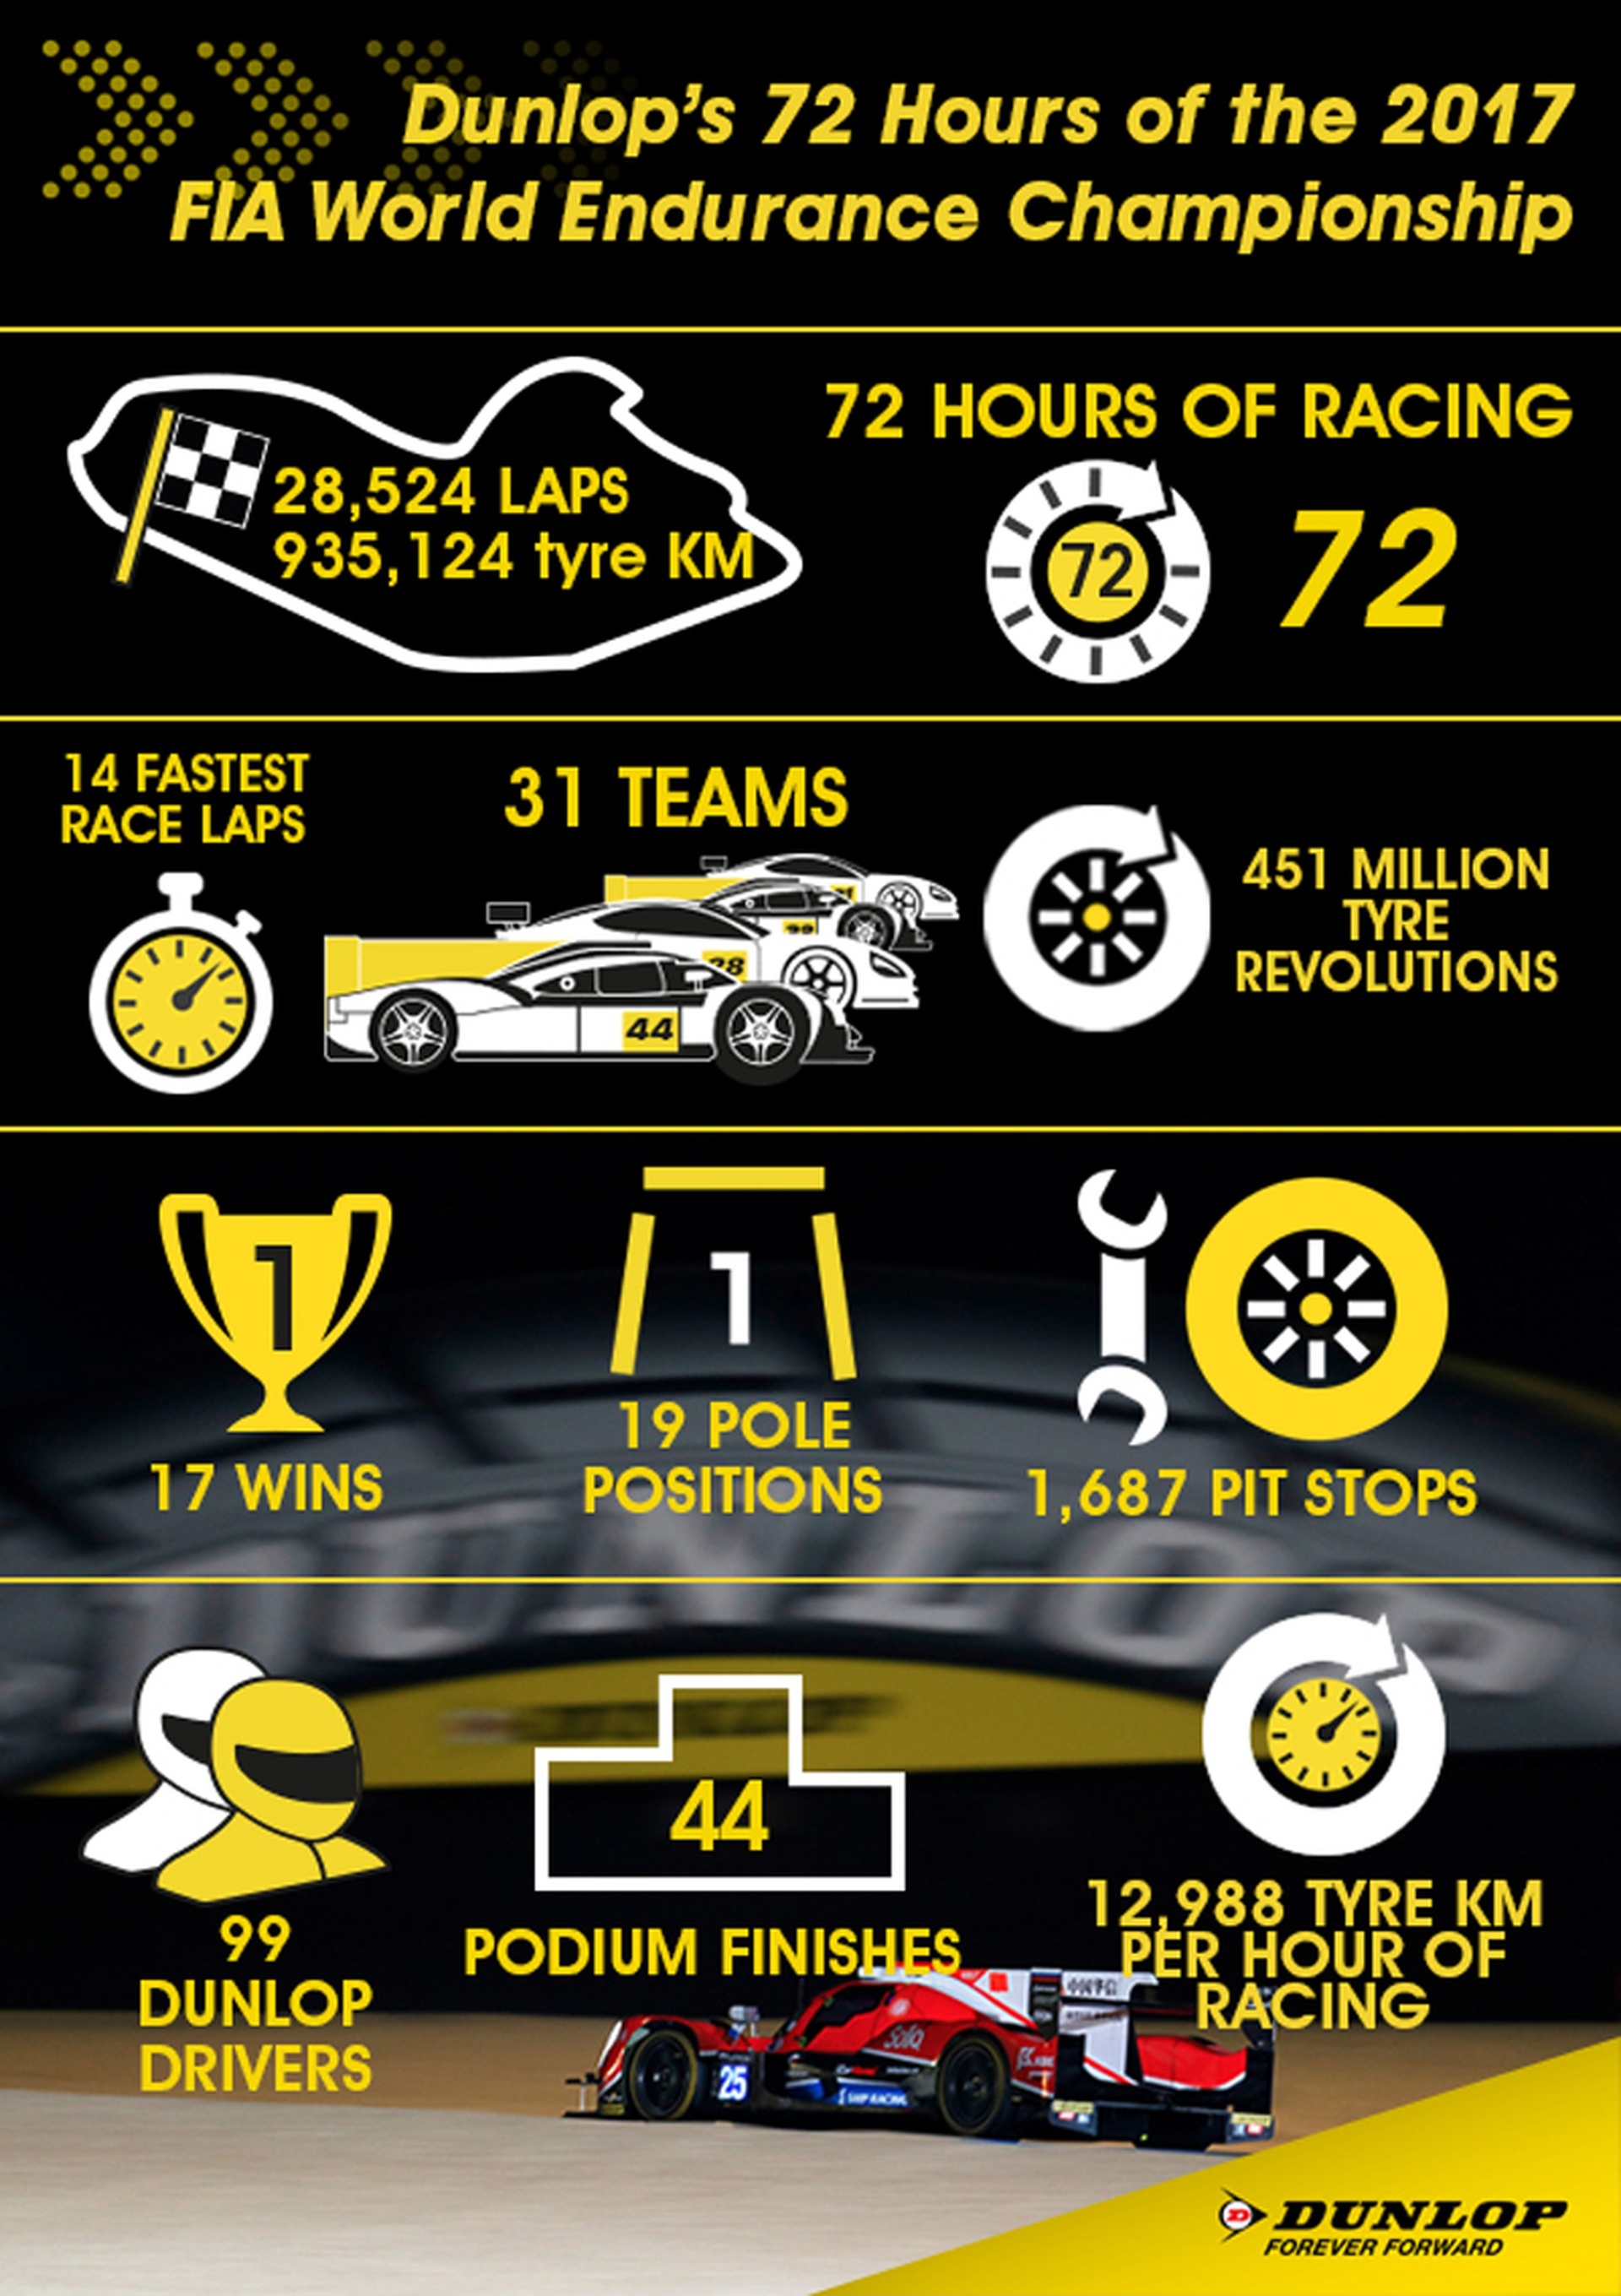 Dunlop's 2017 WEC in numbers